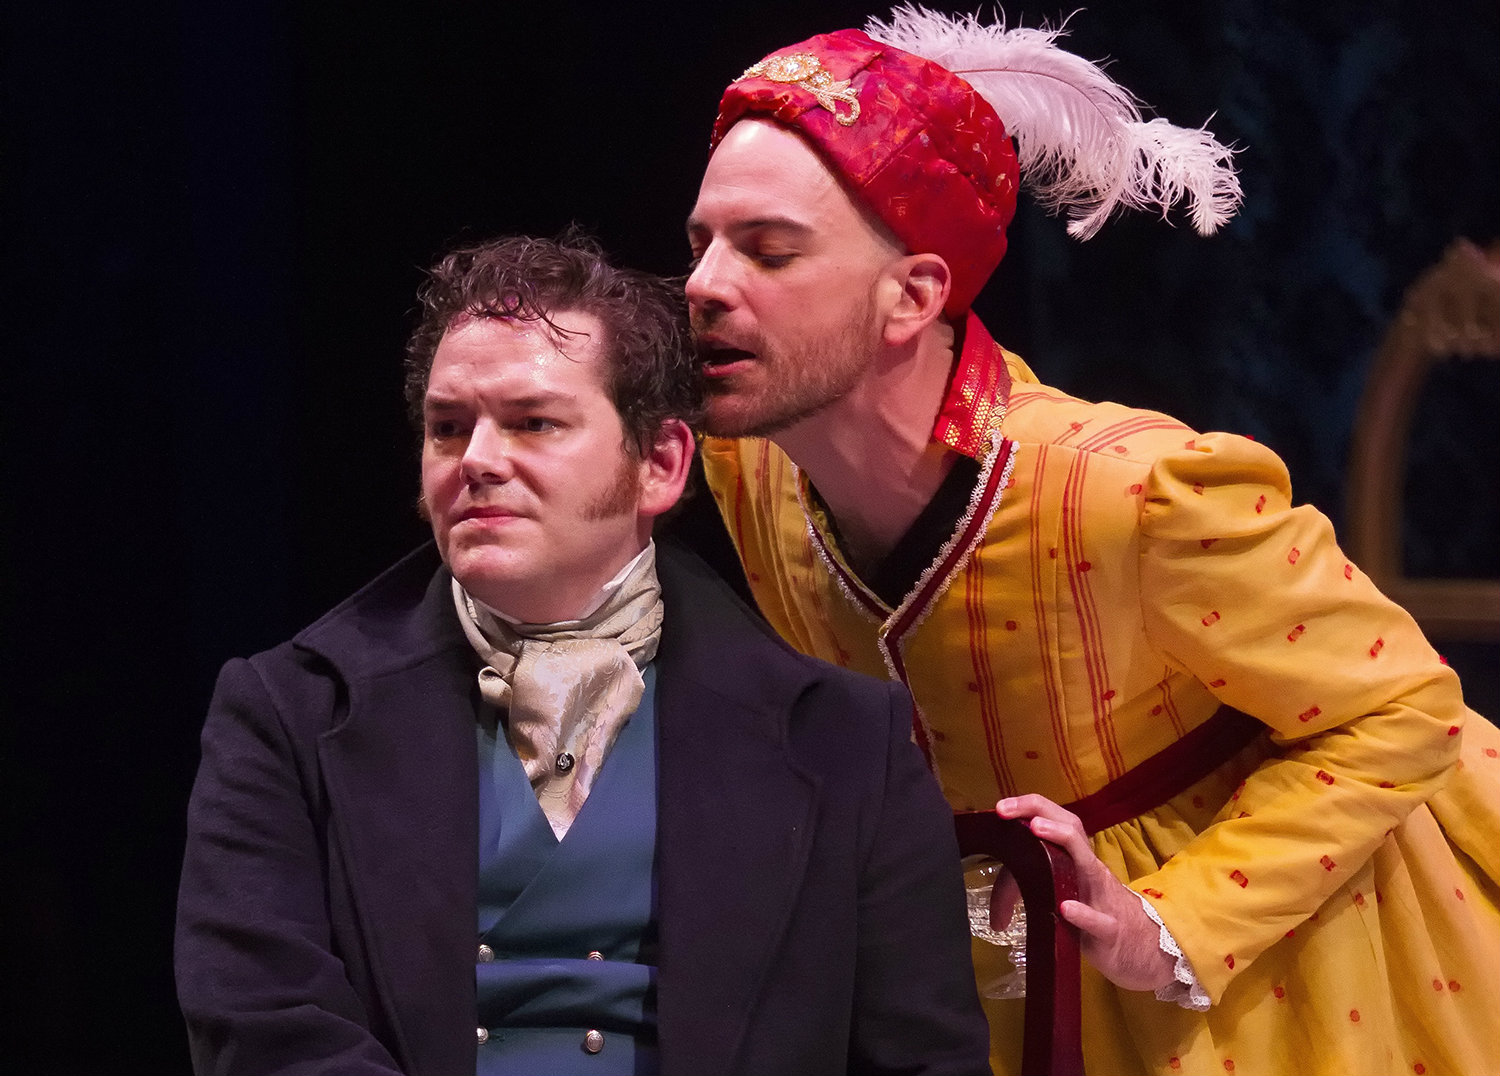 John-Michael Marrs & Brandon Potter in PRIDE AND PREJUDICE at WaterTower Theatre photo by Jason Anderson (2)